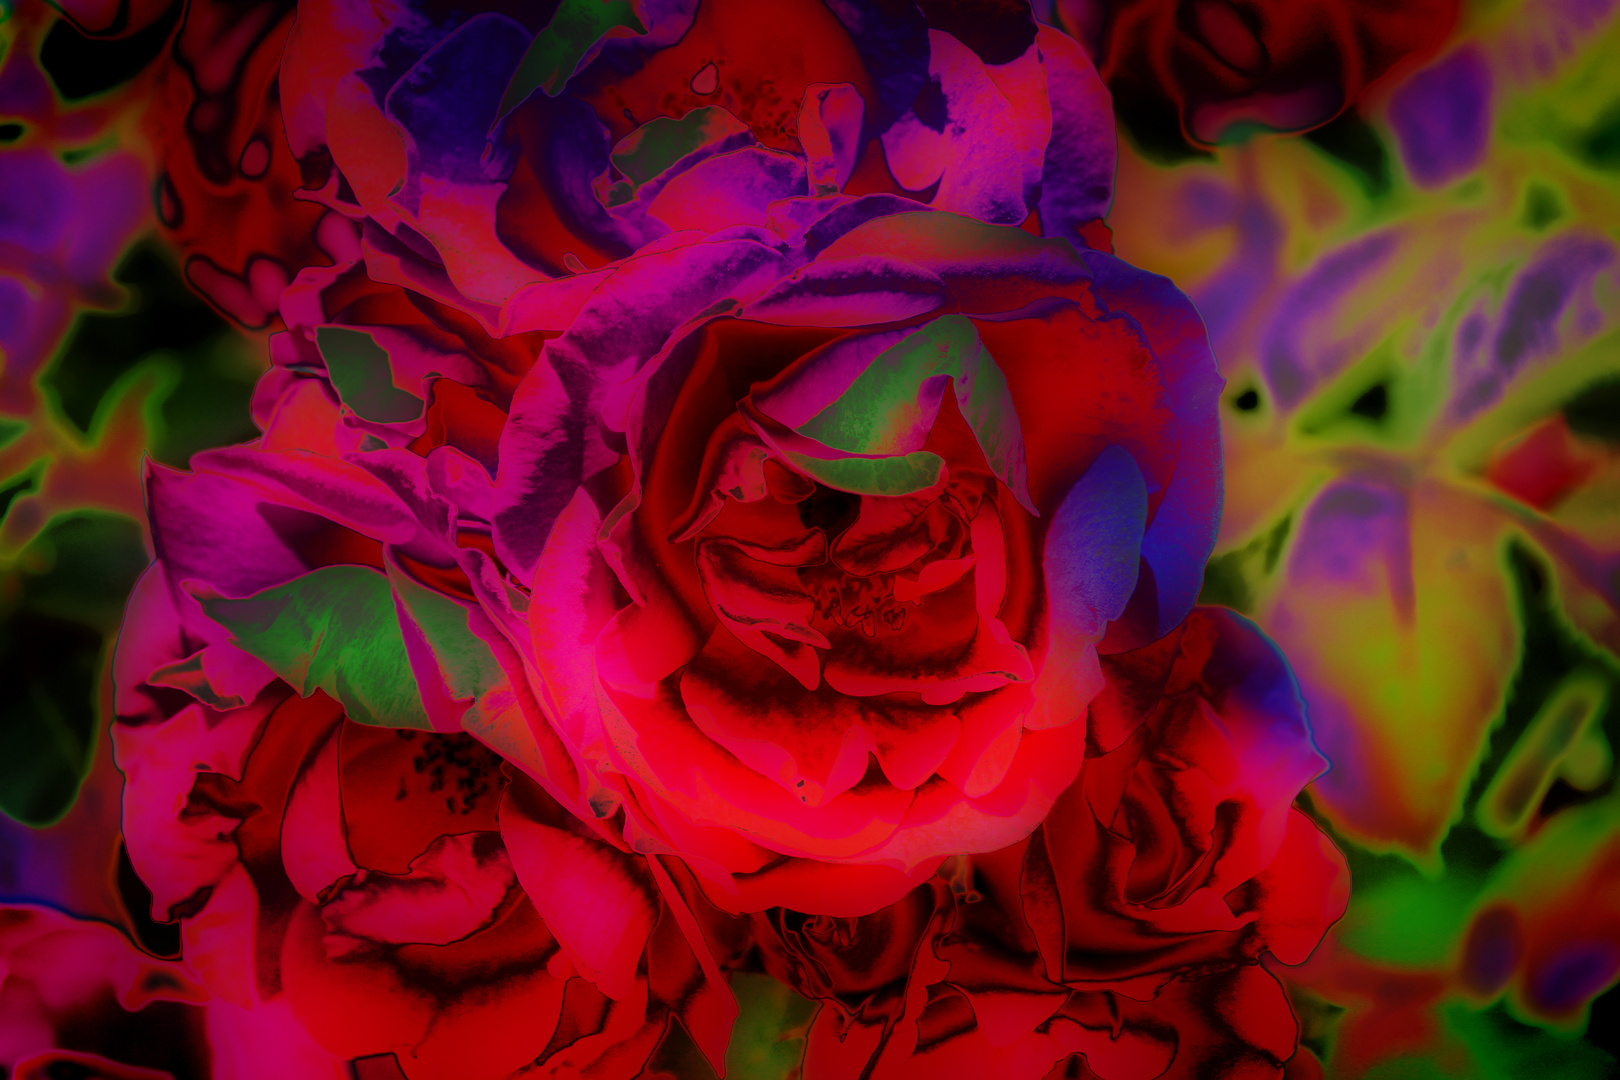 Glowing Roses